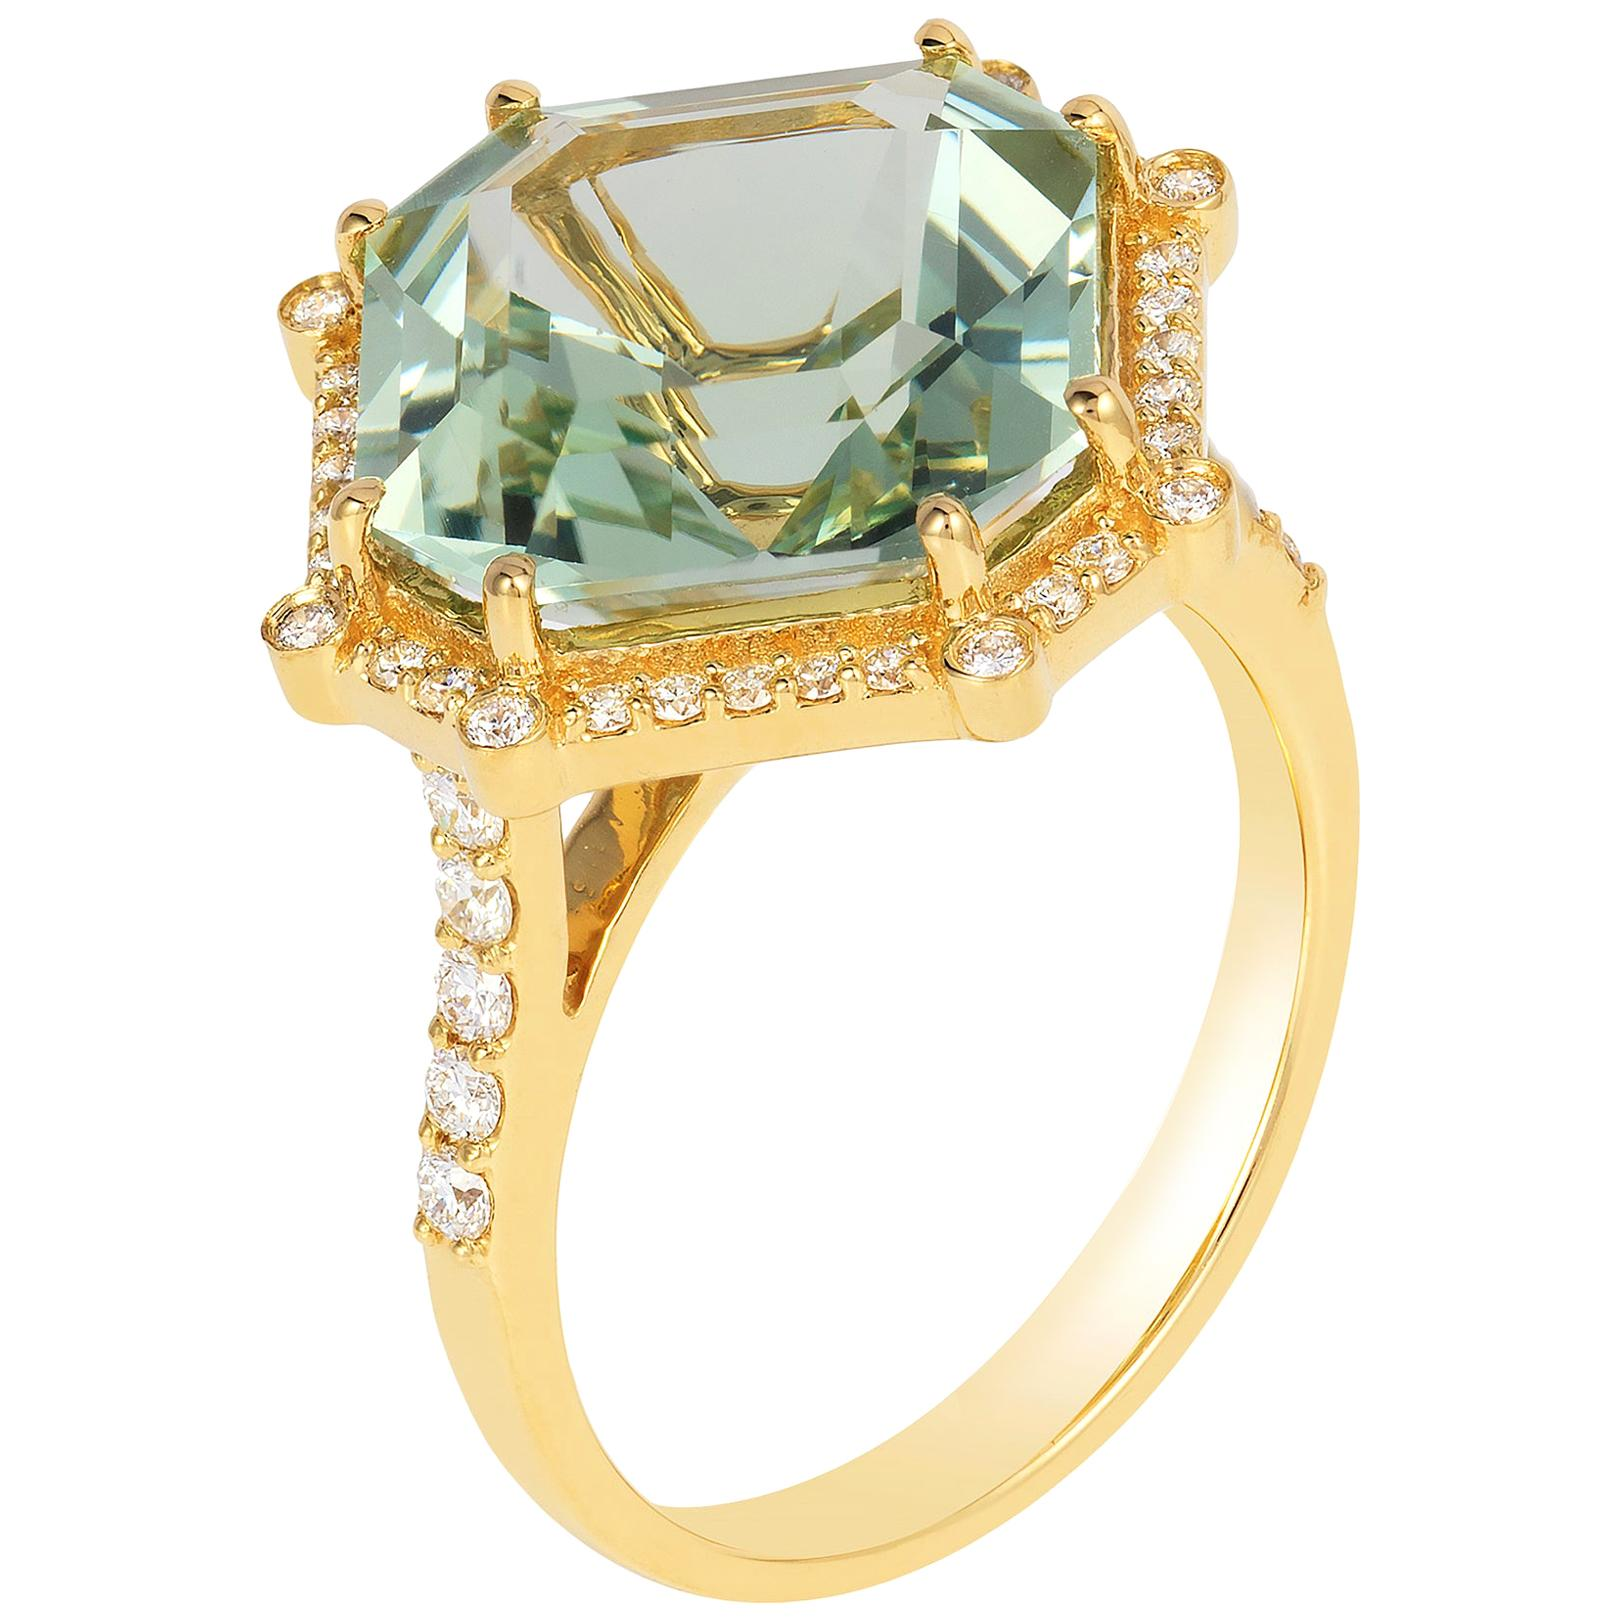 Goshwara Emerald Cut Prasiolite With Diamond Ring